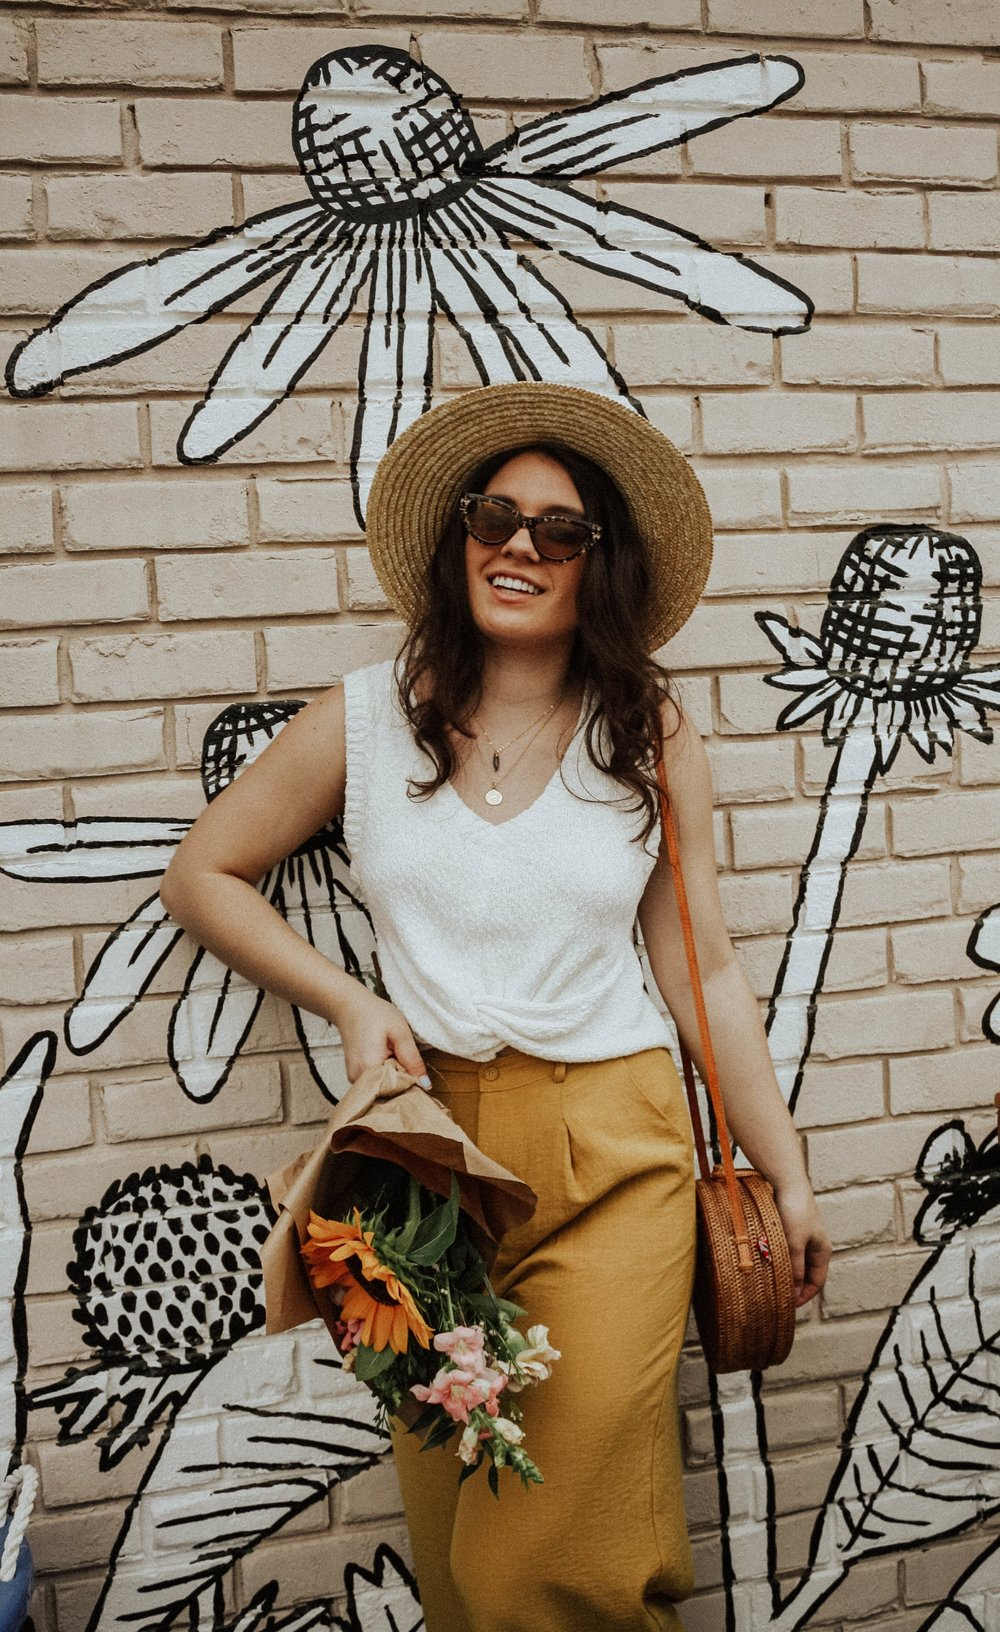 Hat: Lack of Colors; Sunglasses: Amuse Society X D'Blanc; Top: Moon River; Pants: Lost + Wander;Purse: Cleobella; Jewelry: M+M Couture Designs